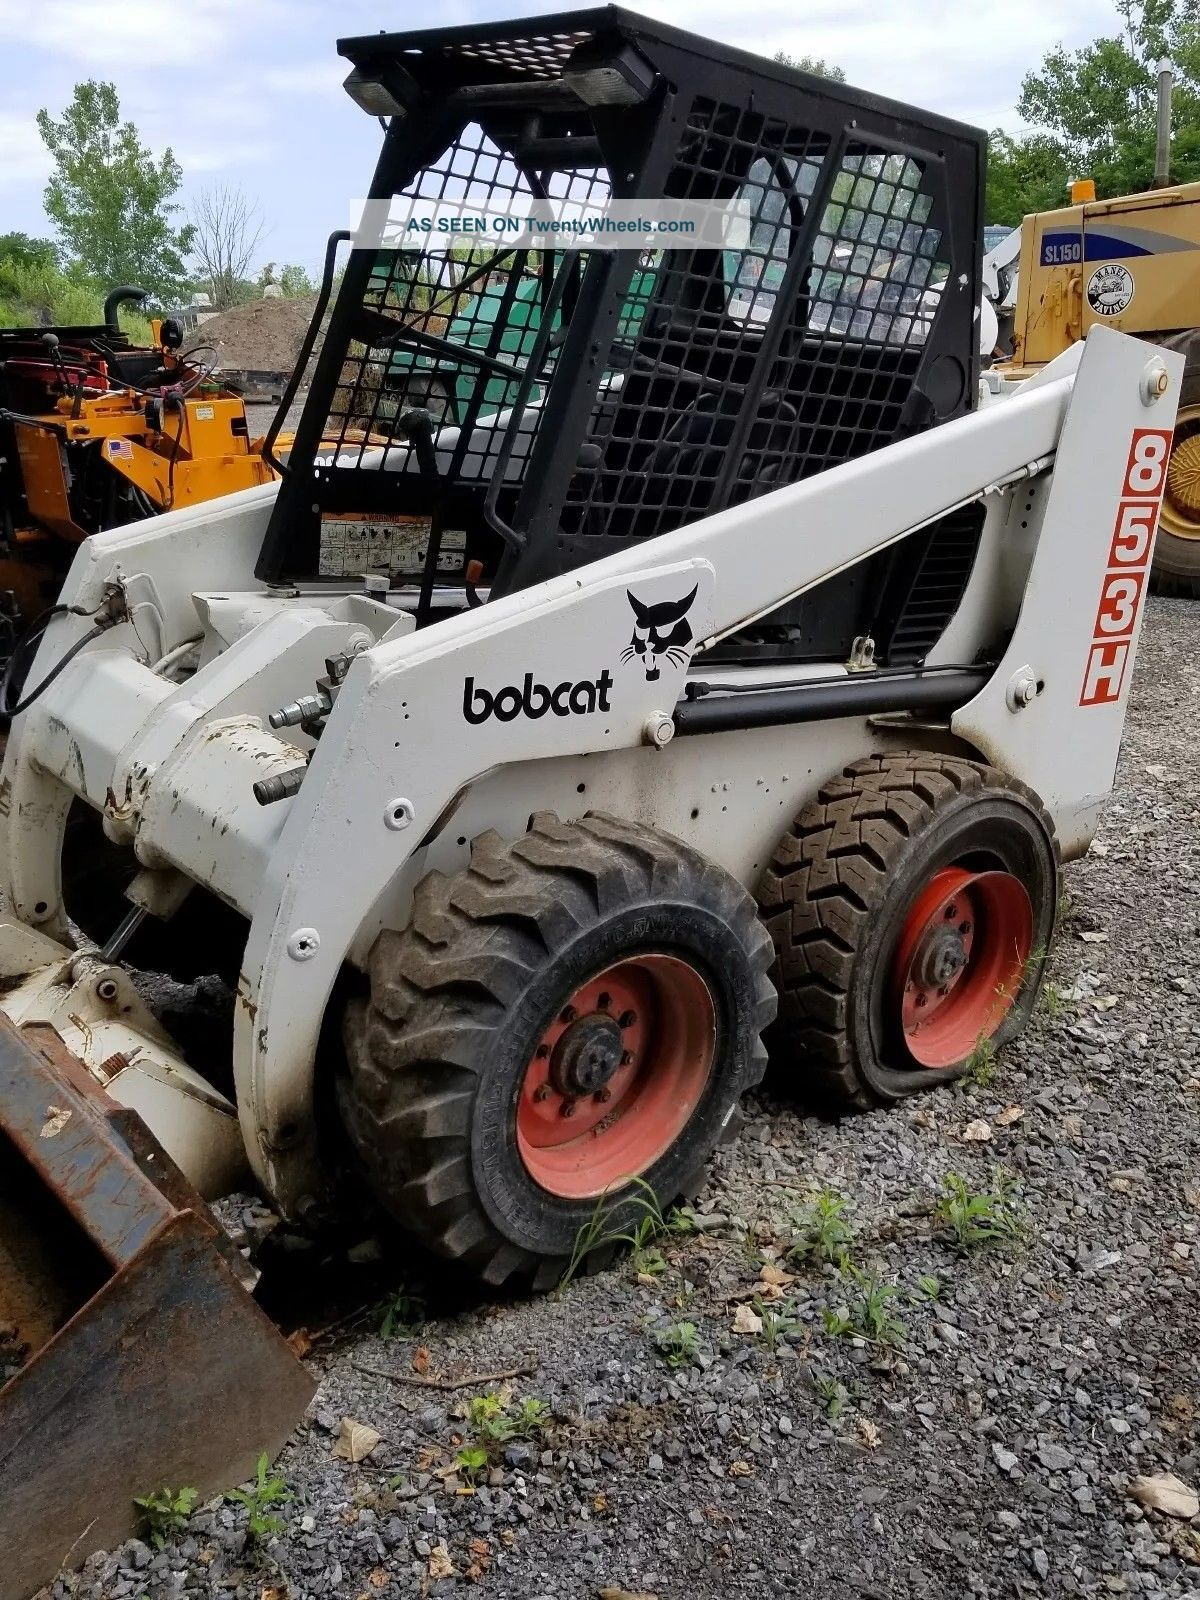 Bobcat Skid Steer 853h Skid Steer Loaders photo